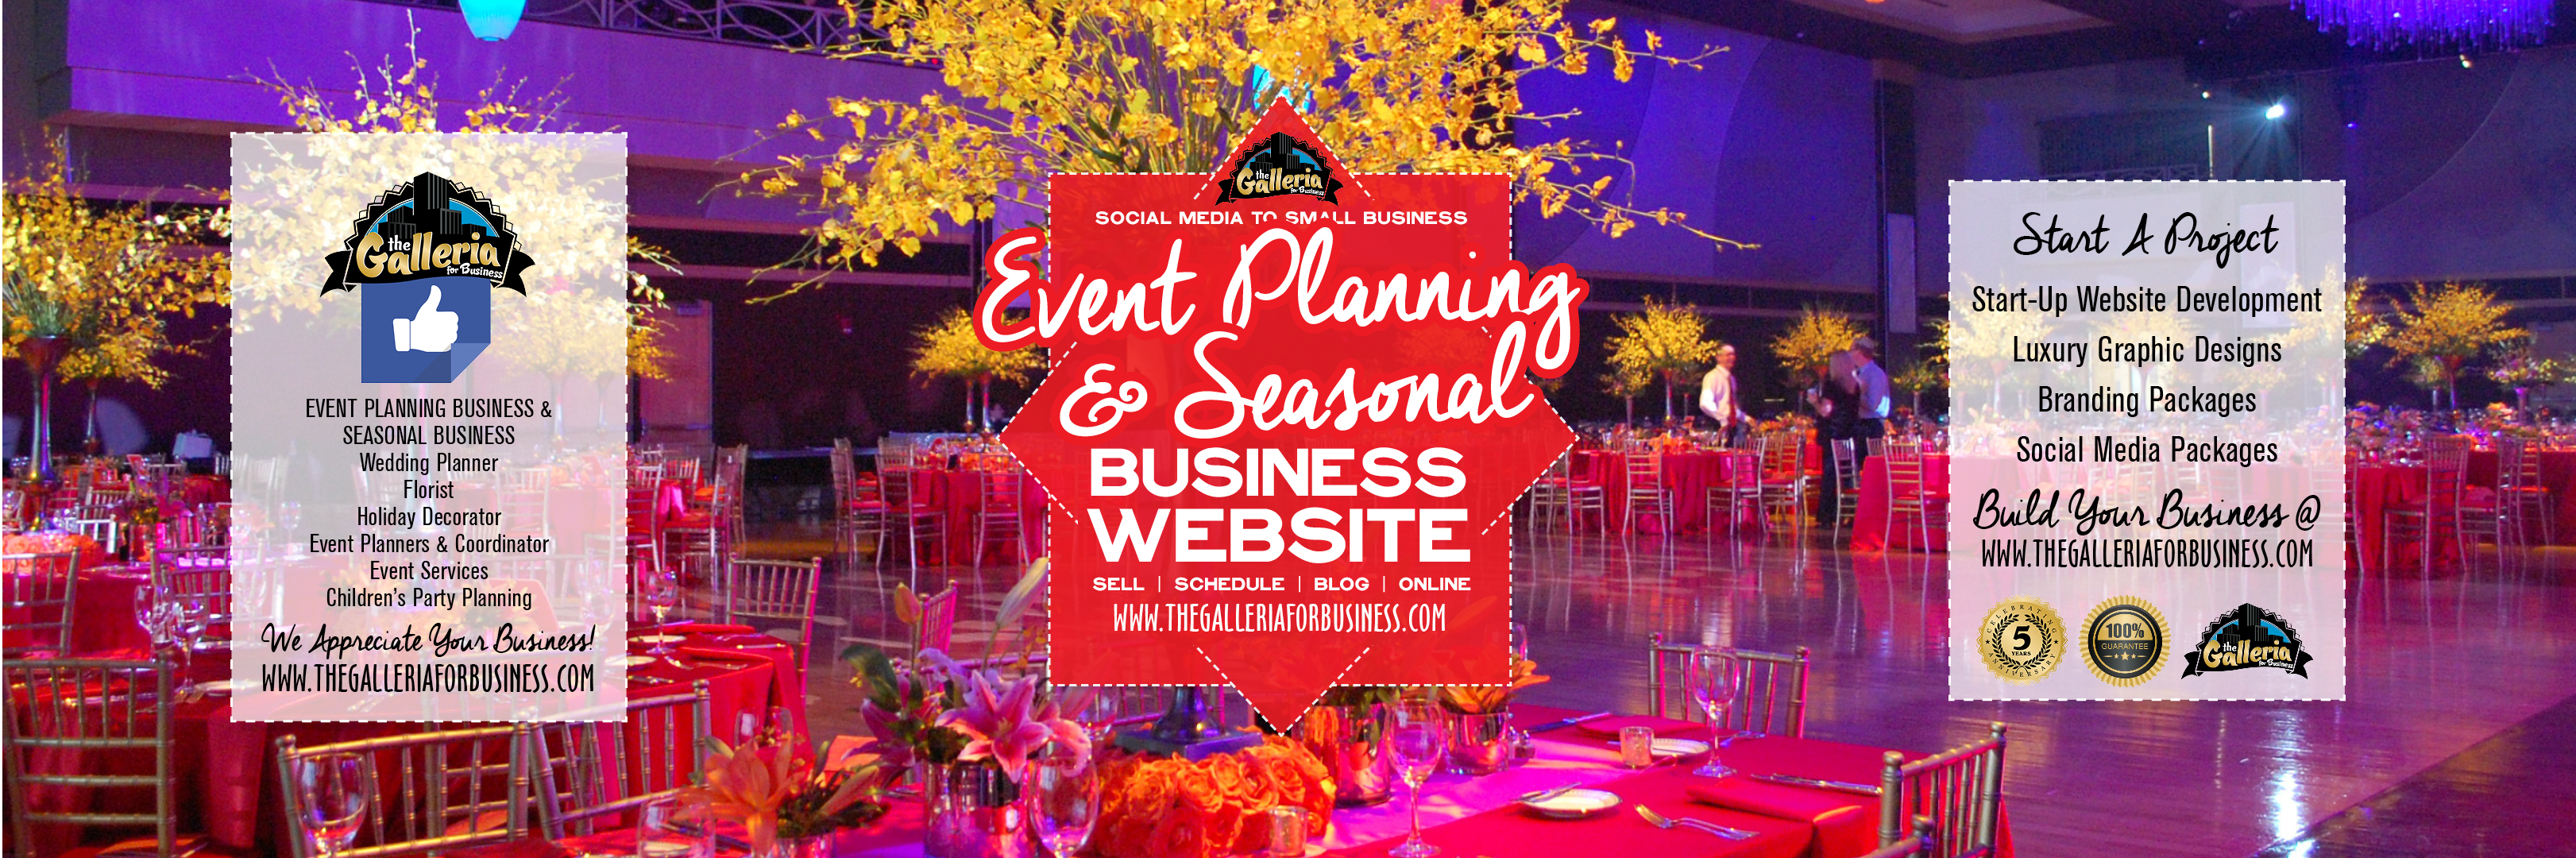 Event Planning & Seasonal Business